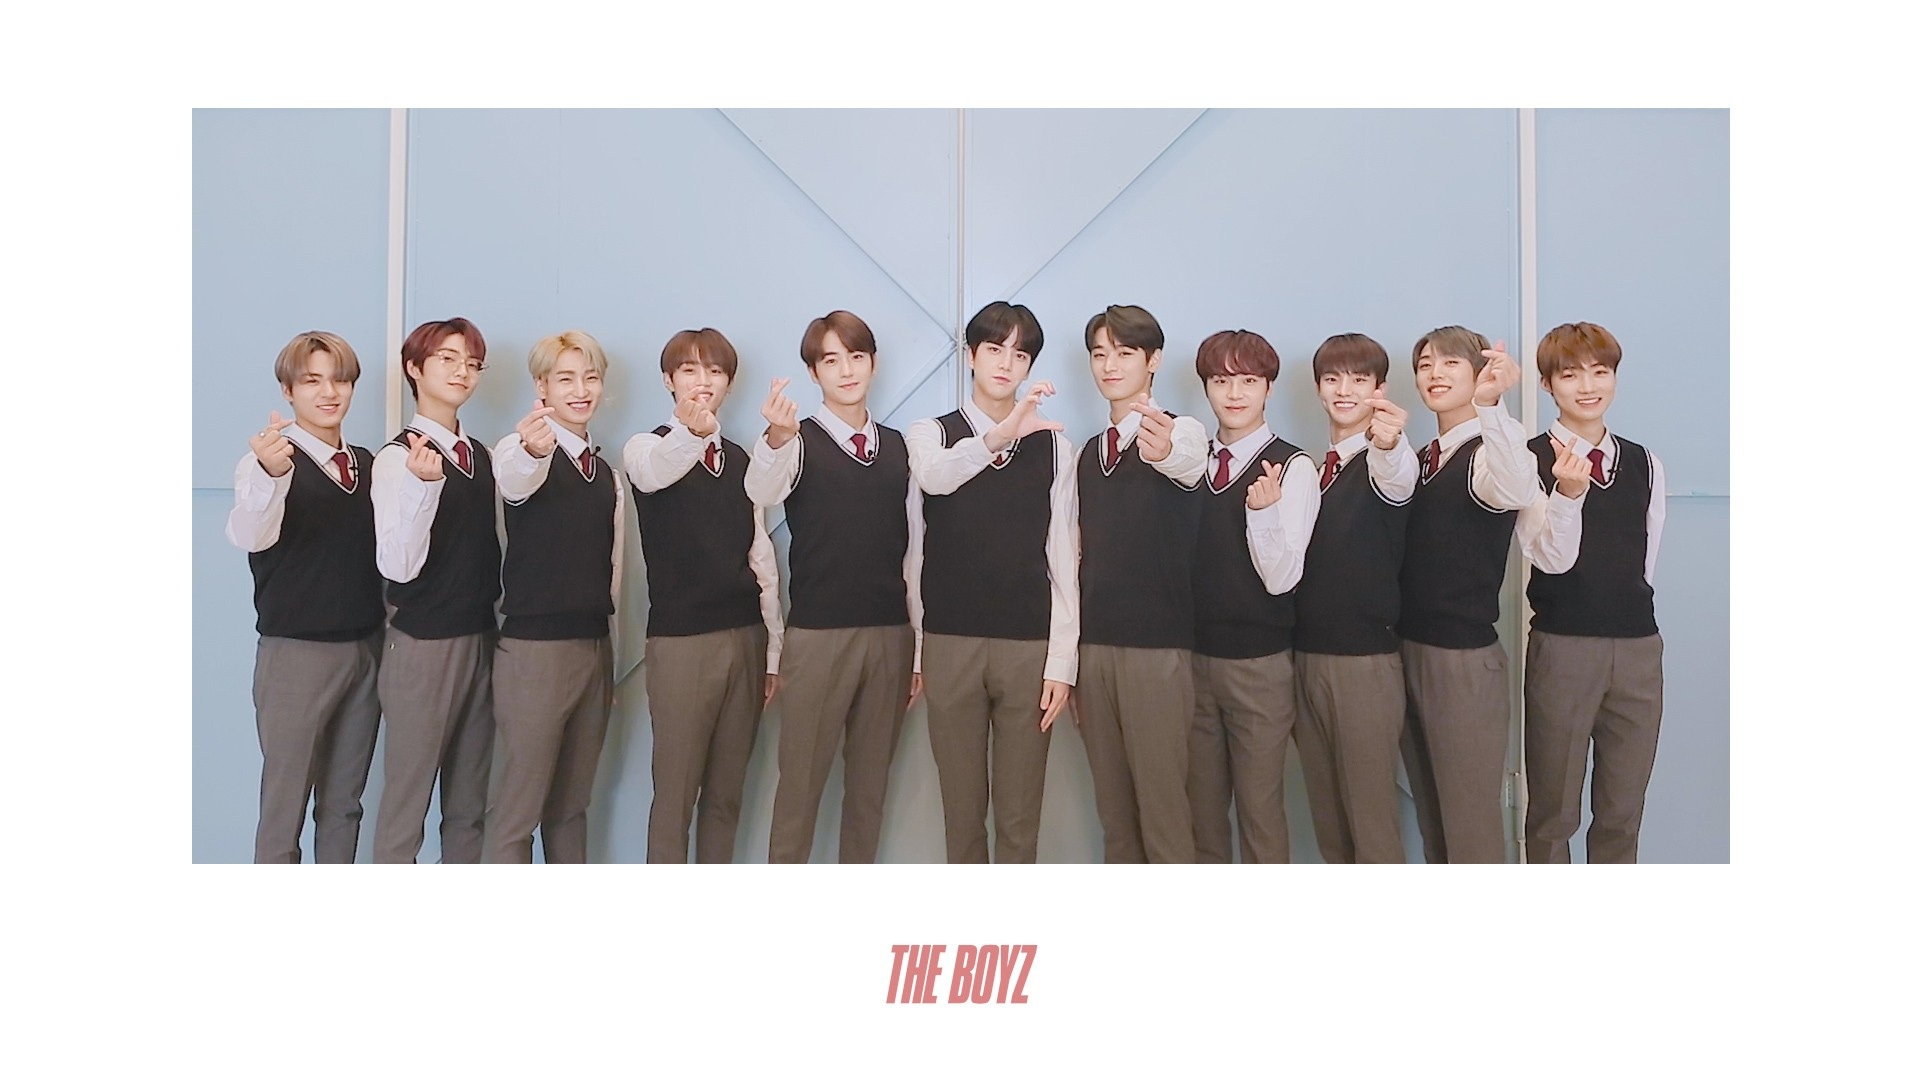 THE BOYZ(더보이즈) 2nd Anniversary Message